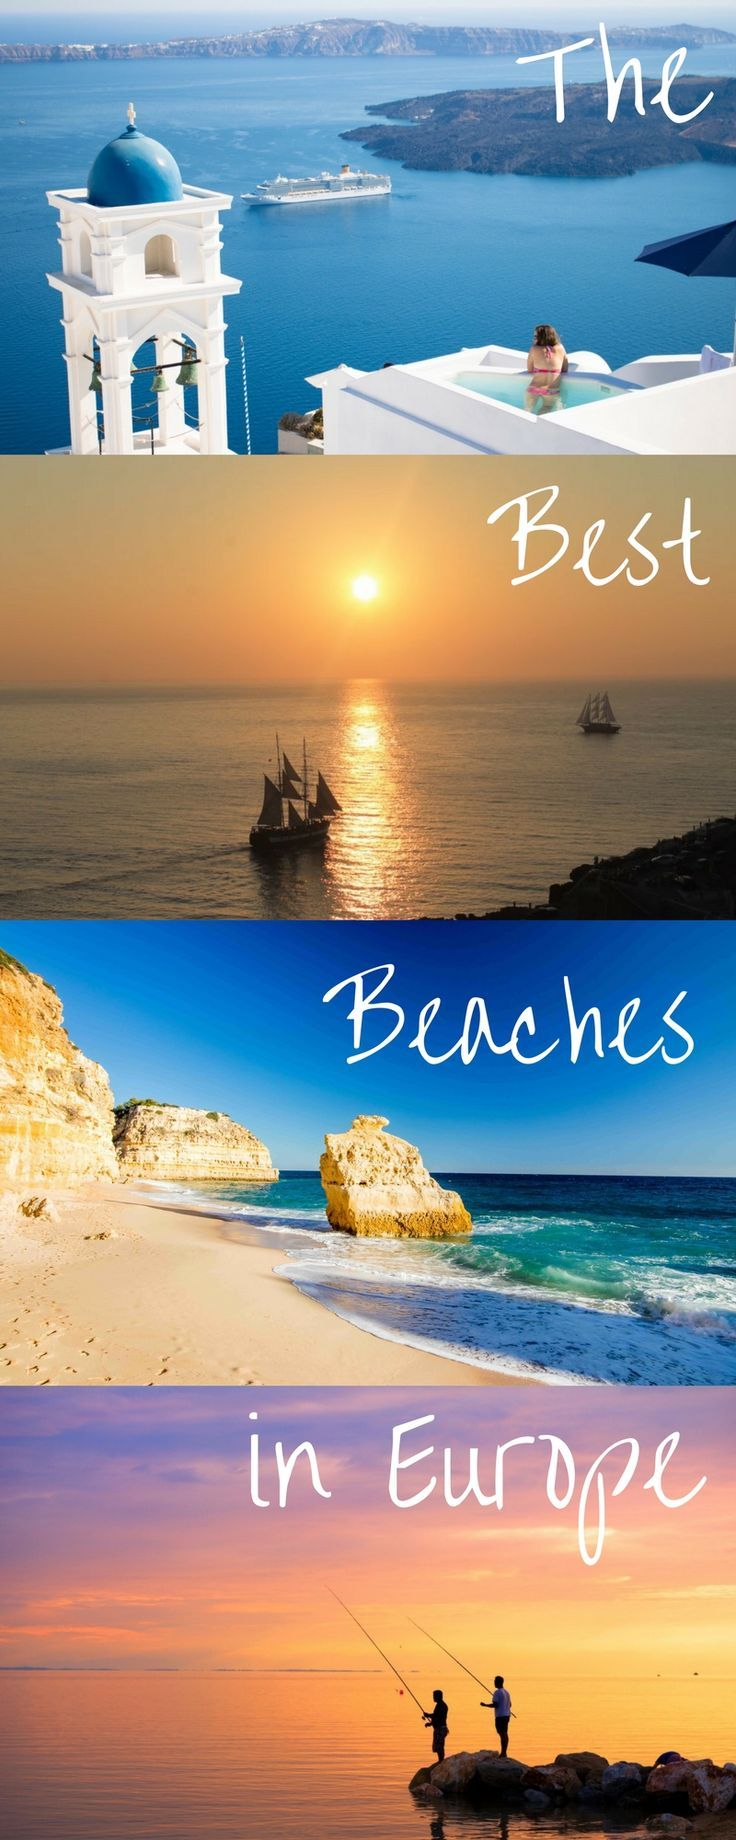 The best European beaches to go on vacation. Beautiful beaches in Greece, Italy, Montenegro, Croatia, and Portugal. These destinations are some of the best trips you can take in your lifetime. Bucket list destinations here!